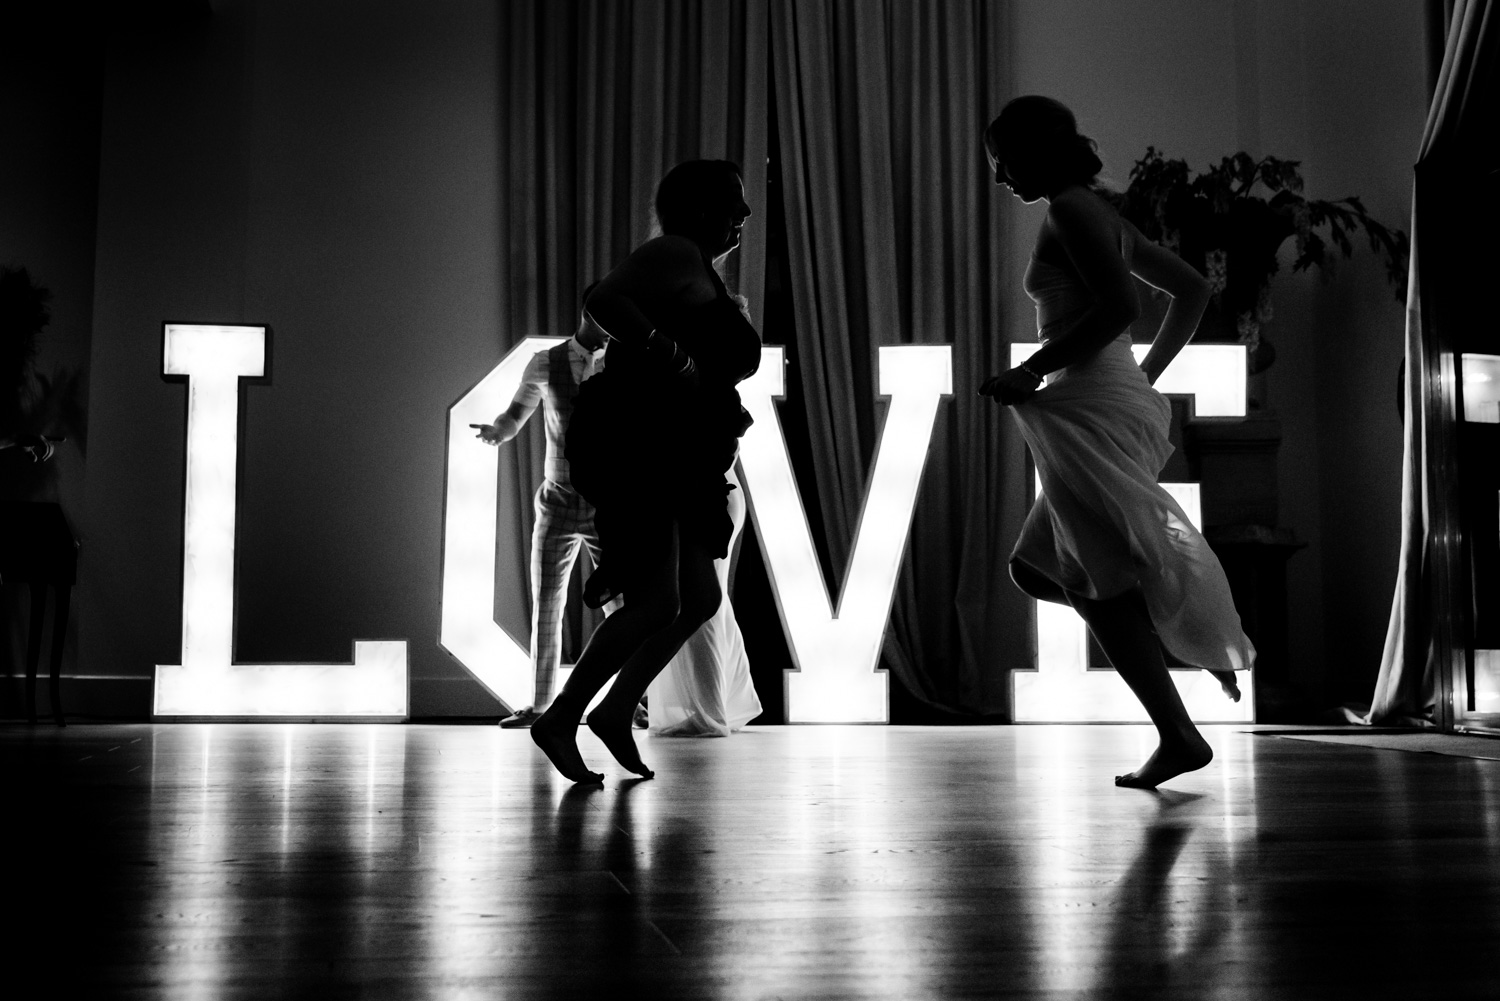 Dancing in front of the love letters